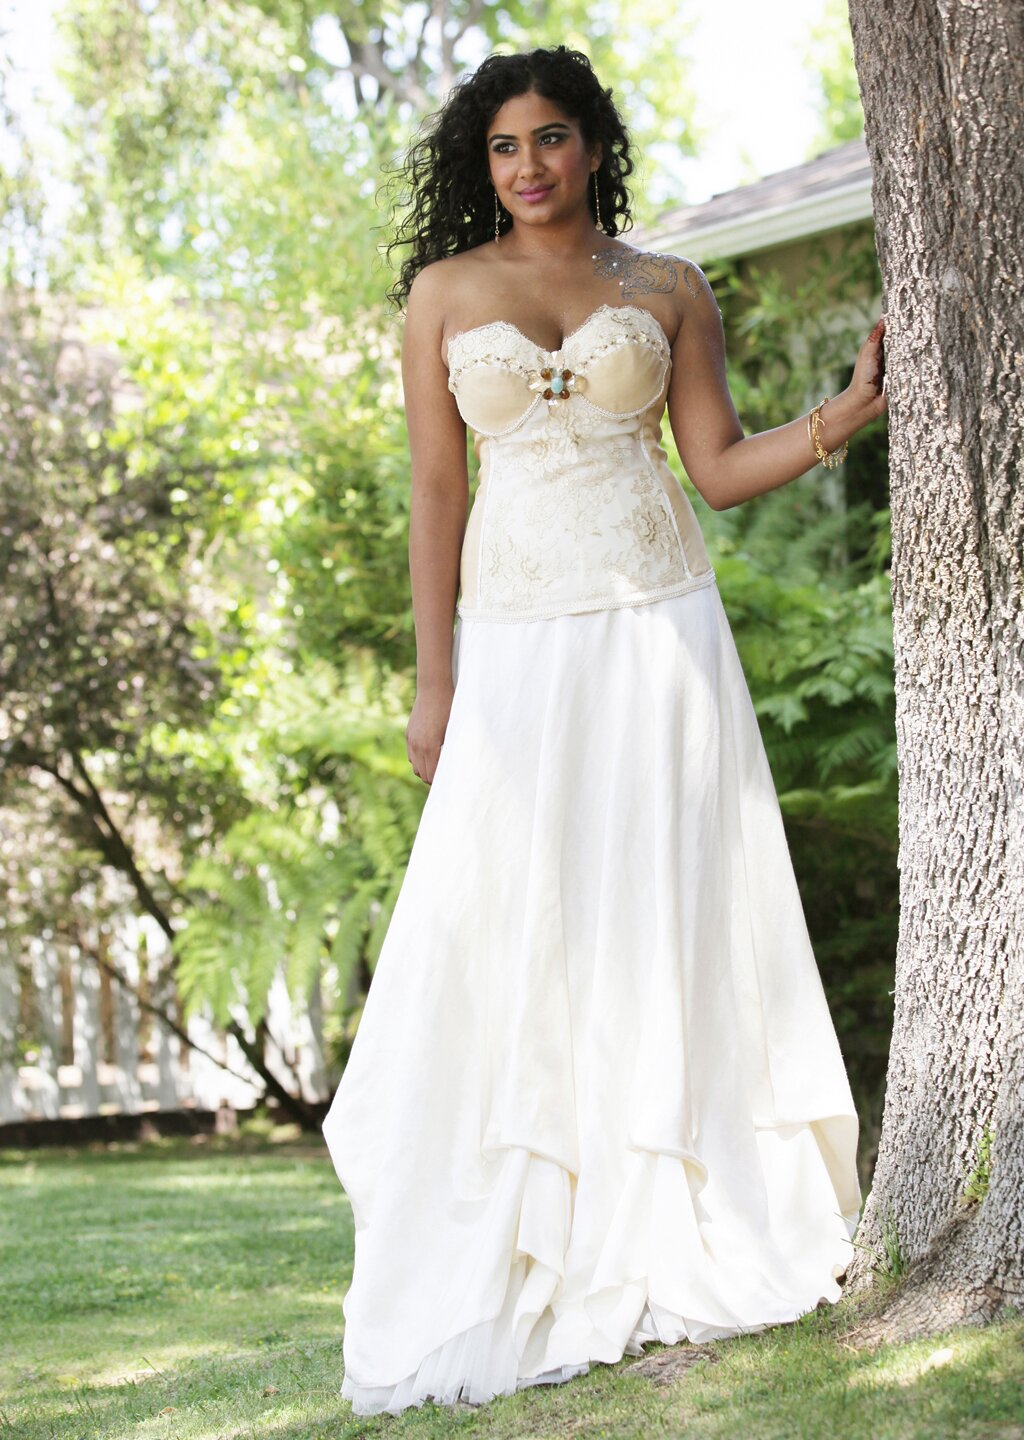 American made wedding dresses: Pictures ideas, Guide to buying ...